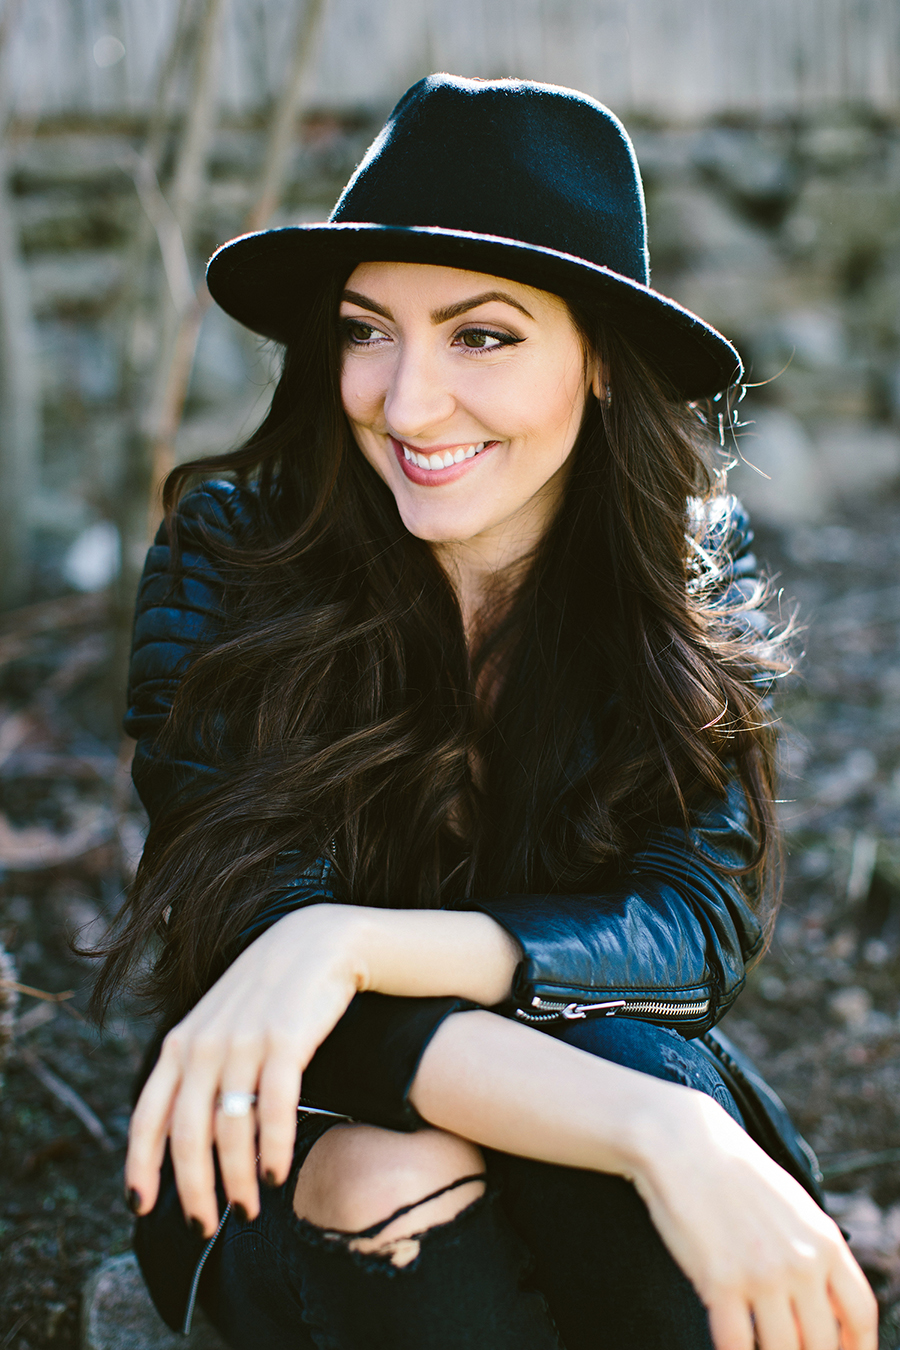 - For the past 10 years, I was a photo retoucher and creative studio lead at a hi-end boutique in NYC. Life was busy and hectic, but I enjoyed the hustle for a long time. All that changed when I had my beautiful daughter in 2017, and made the decision to stay home with her and pursue my own editing career.I've done extensive retouching work for various hi-end fashion magazines such as Vogue, Vanity Fair and Allure, along with a variety of book covers for Penguin Random House. I was the head retoucher for accounts such as Victoria's Secret and David's Bridal, working with both catalog and web images.I graduated from Marist College in 2006 with a bachelors in Studio Fine Art with a concentration in photography. For years I was a wedding photographer, but found I enjoyed editing more than shooting and decided to follow that passion.My husband is an Art Director at HarperCollins and we live in Westchester, NY with our daughter Copeland. And yes, she is named after a band. :)If you are interested in my editing services, let's chat!